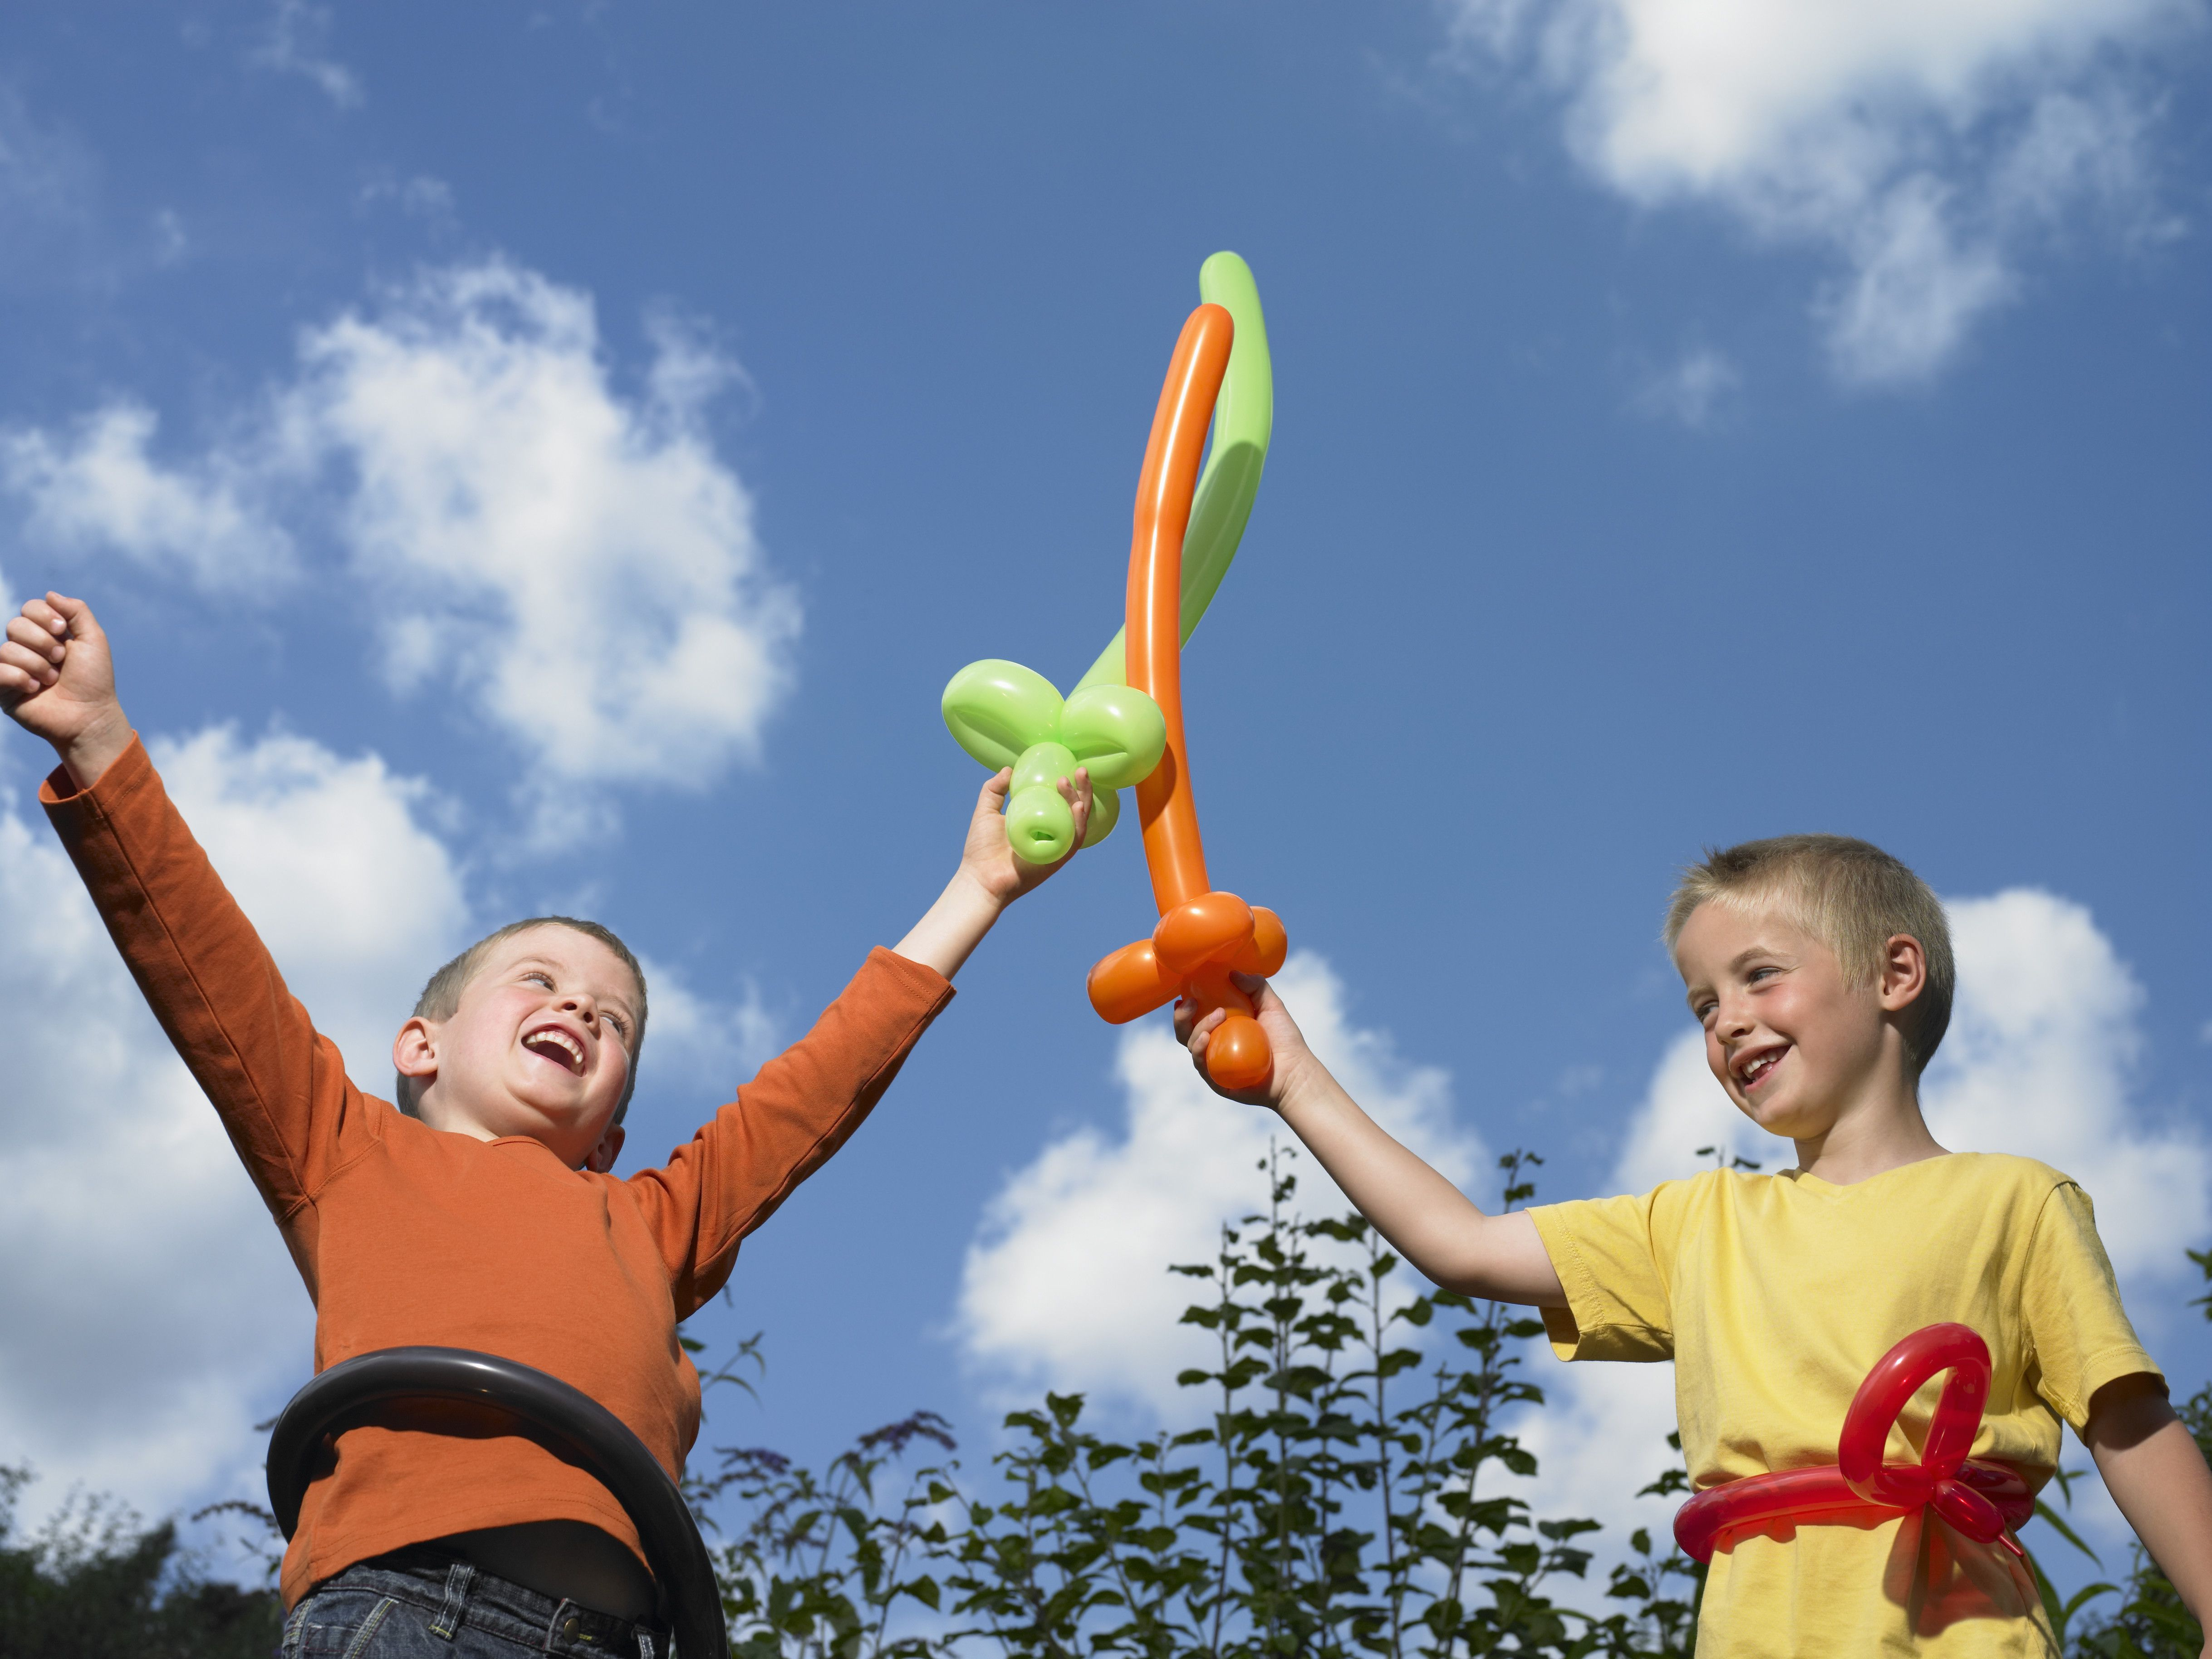 Two boys (5-7) playing with balloon swords, laughing, low angle view